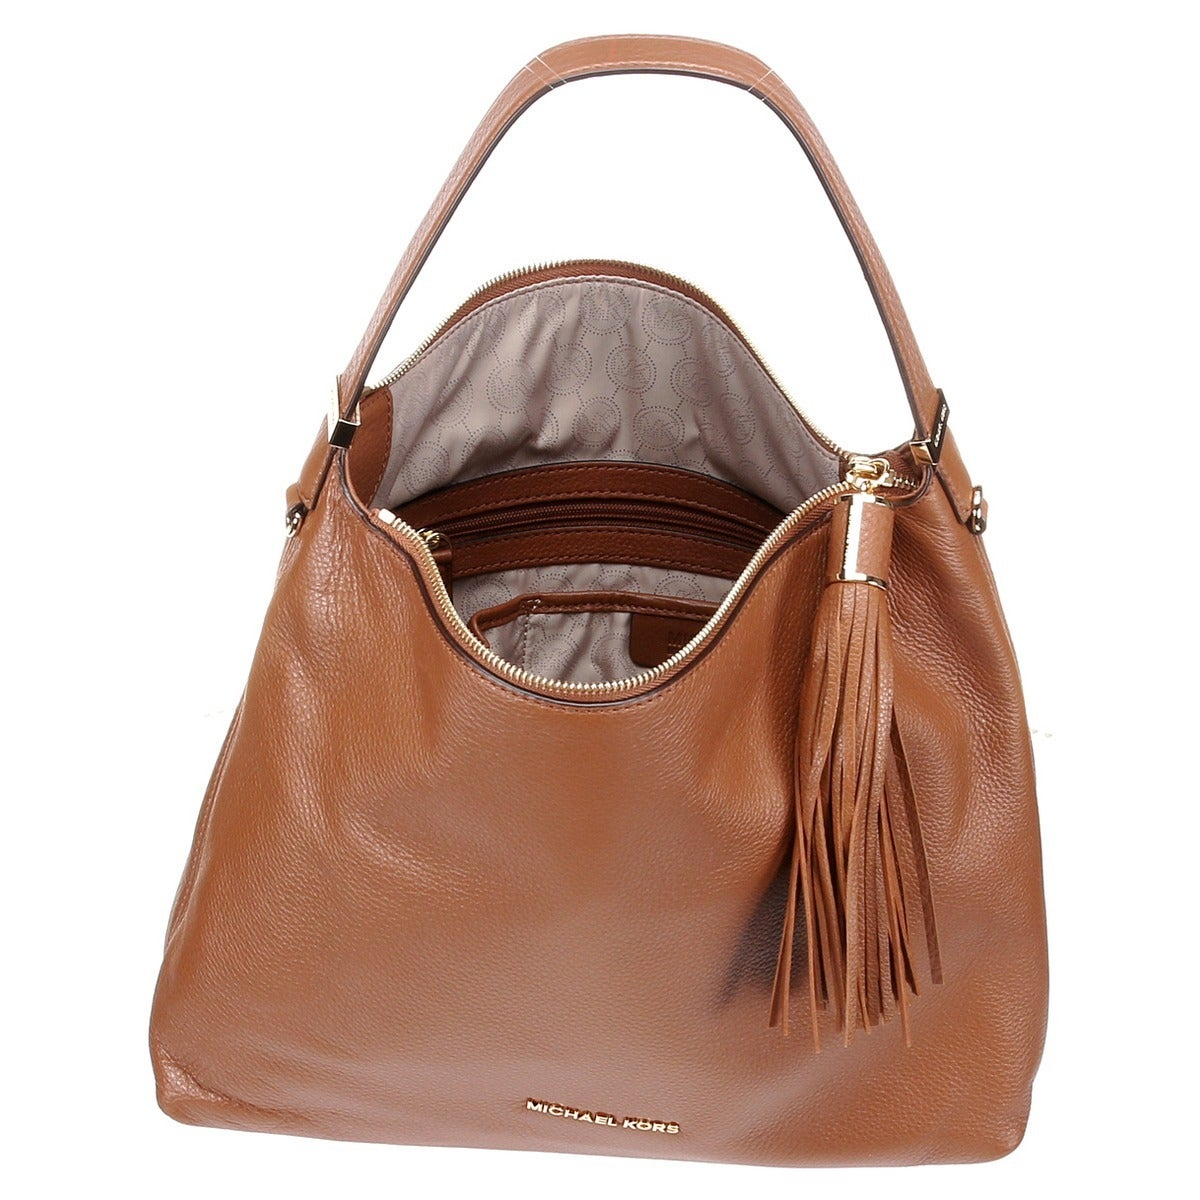 f0ed21567aaa Shop Michael Kors Weston Large Top Zip Shoulder Bag - Luggage - Free  Shipping Today - Overstock - 8331710